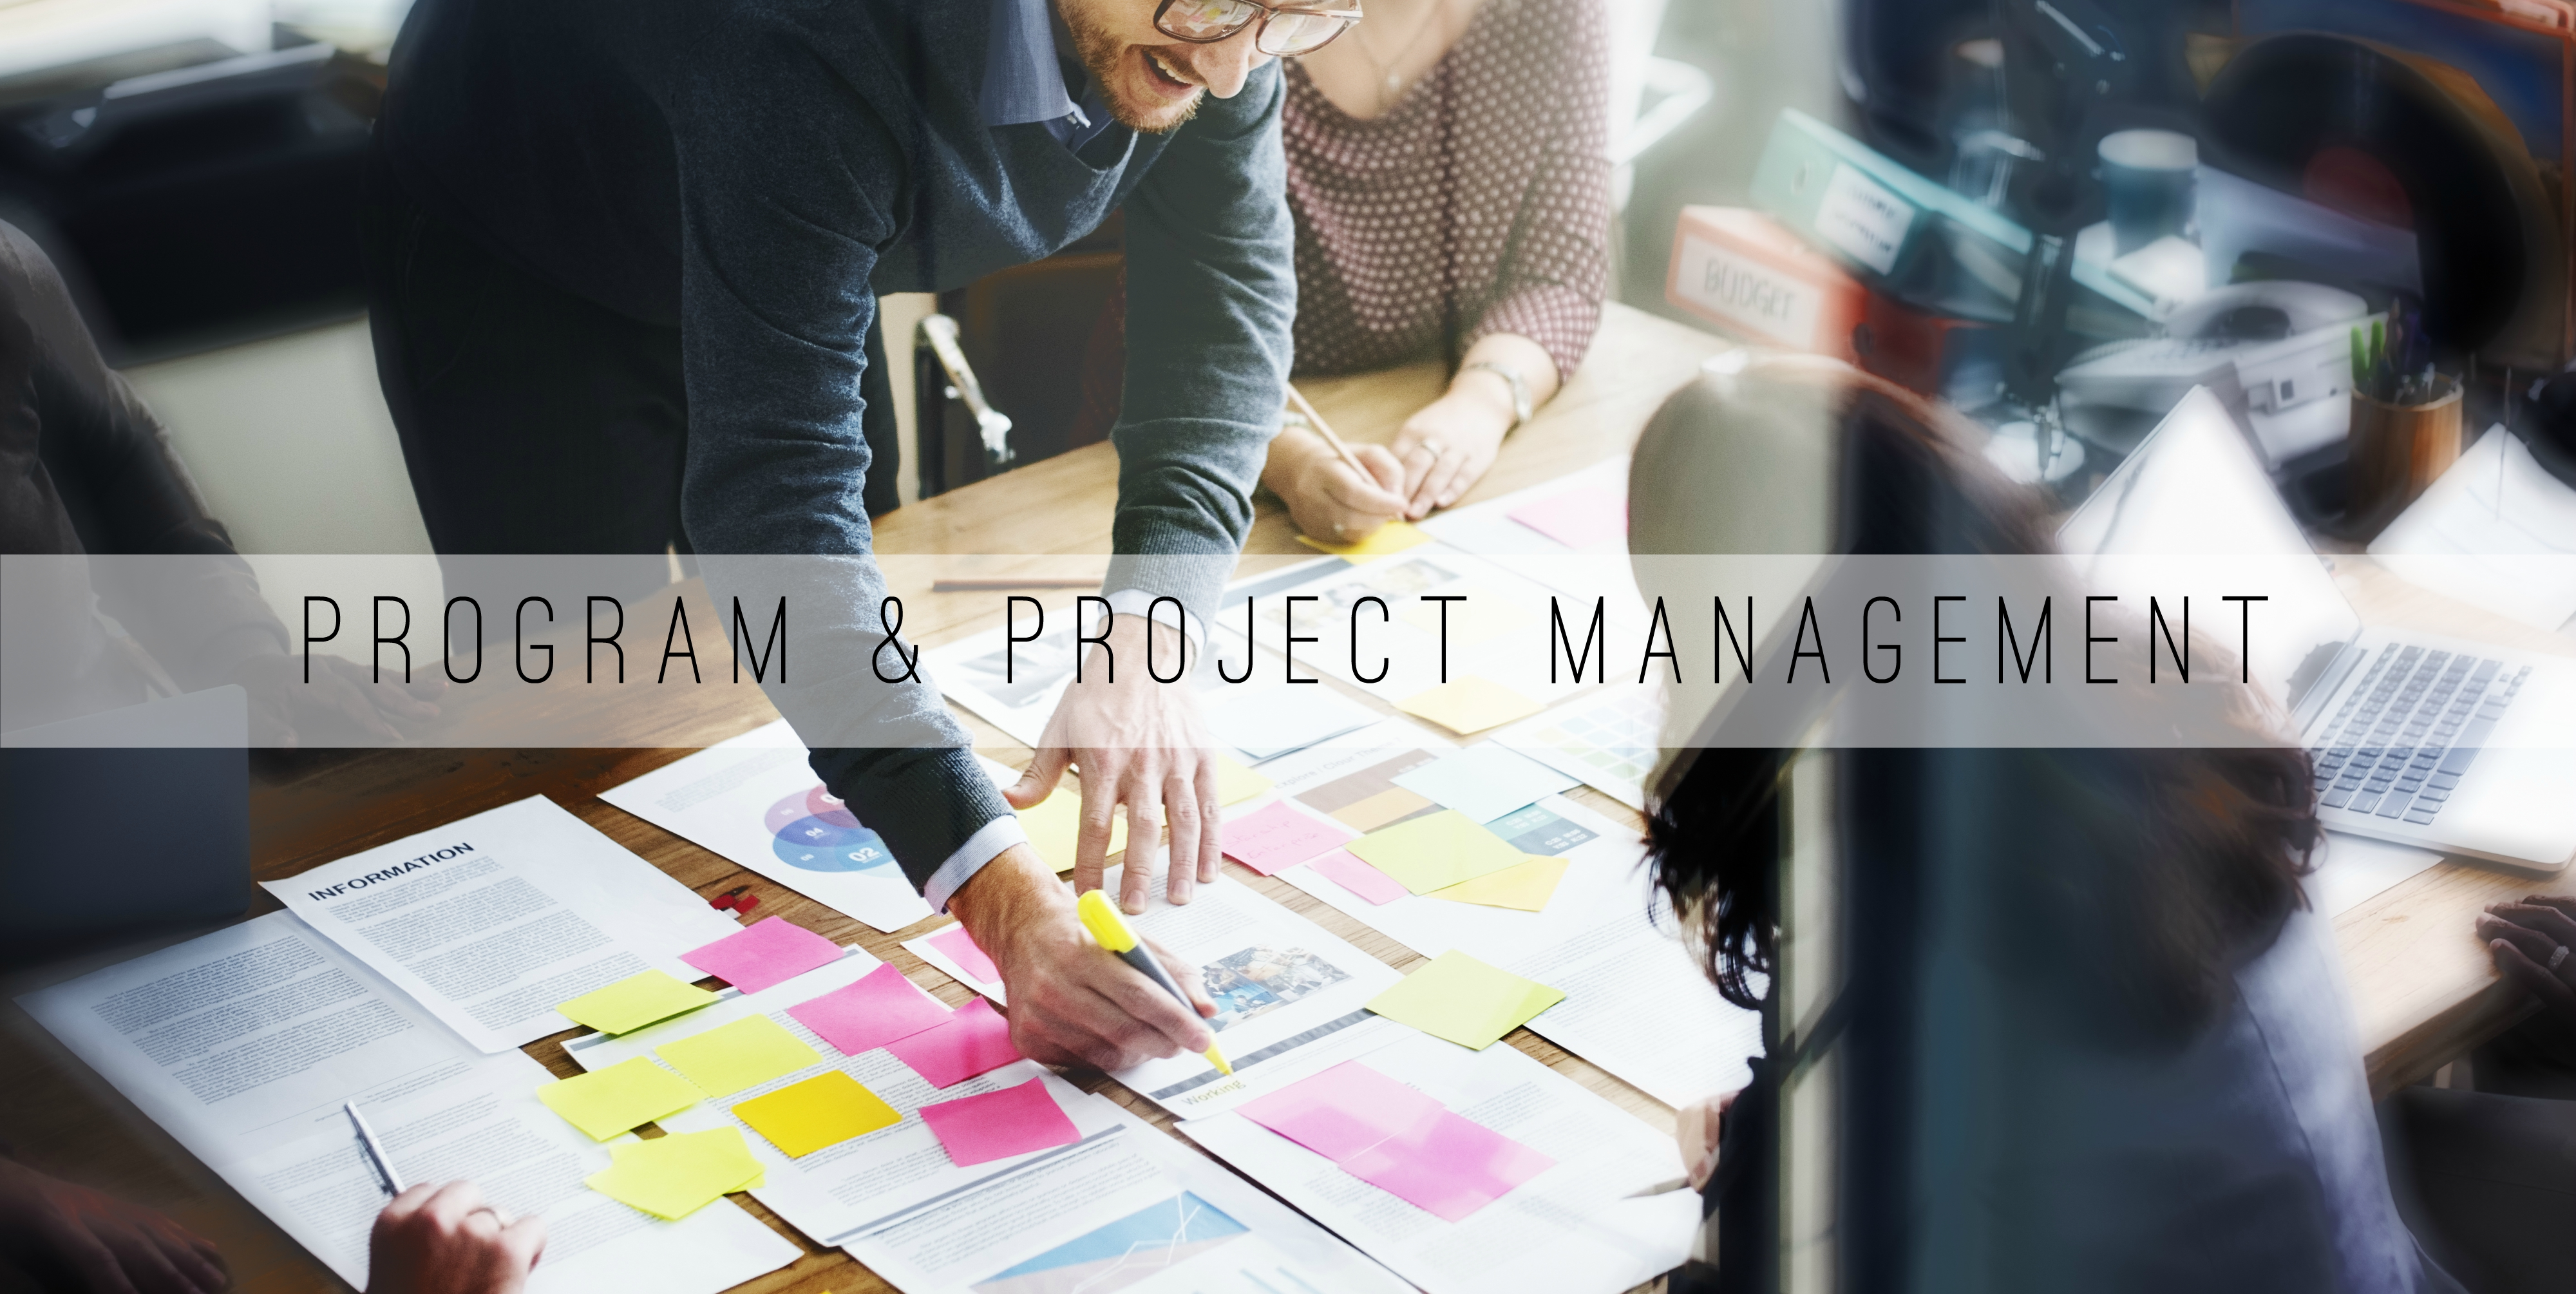 Ppt consulting providing people process technology solutions explore our service offerings program and project management xflitez Images